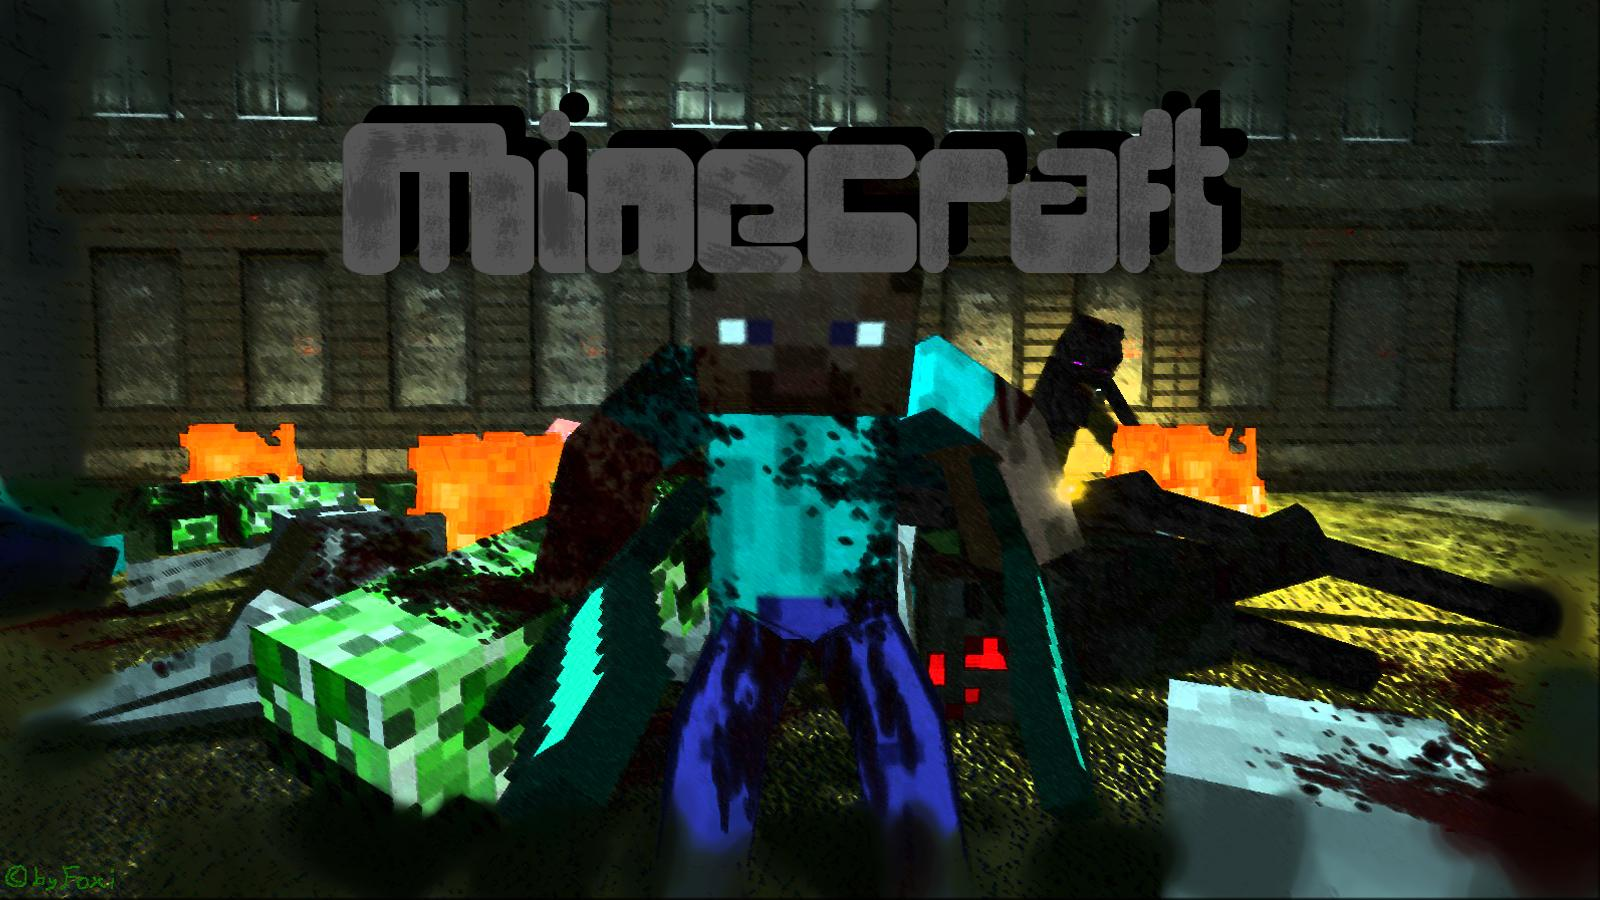 Minecraft Desktop Background Discussion Minecraft Discussion 1600x900